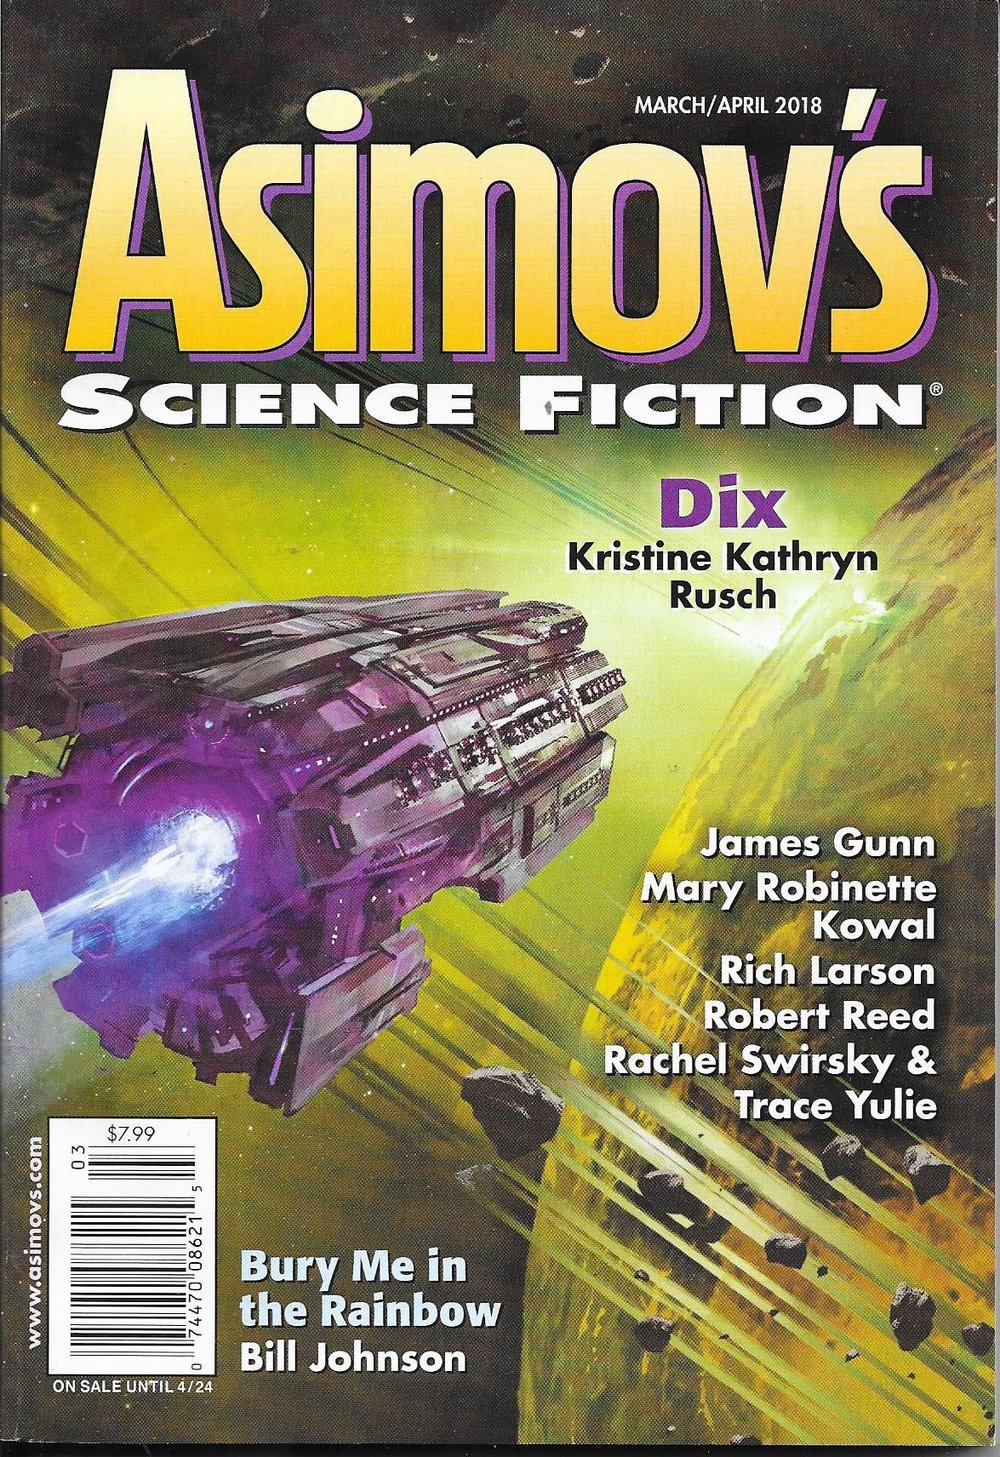 Asimov's March/April 2018 Issue